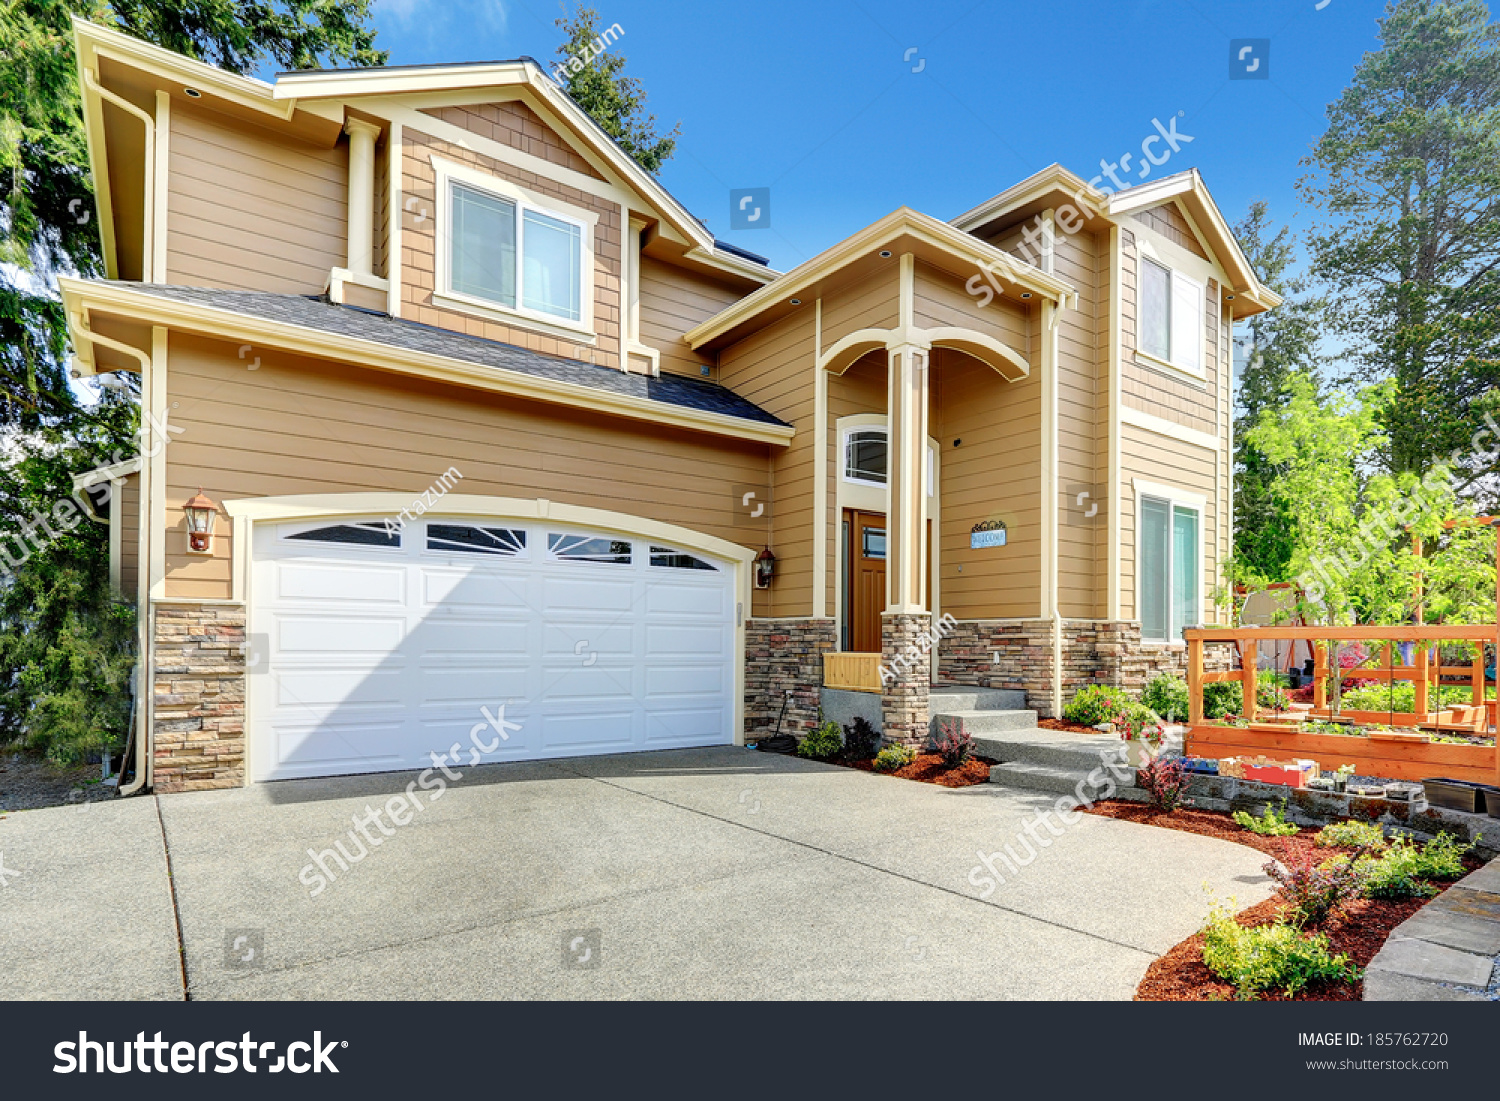 Luxury big house garage high column stock photo 185762720 for House with big garage